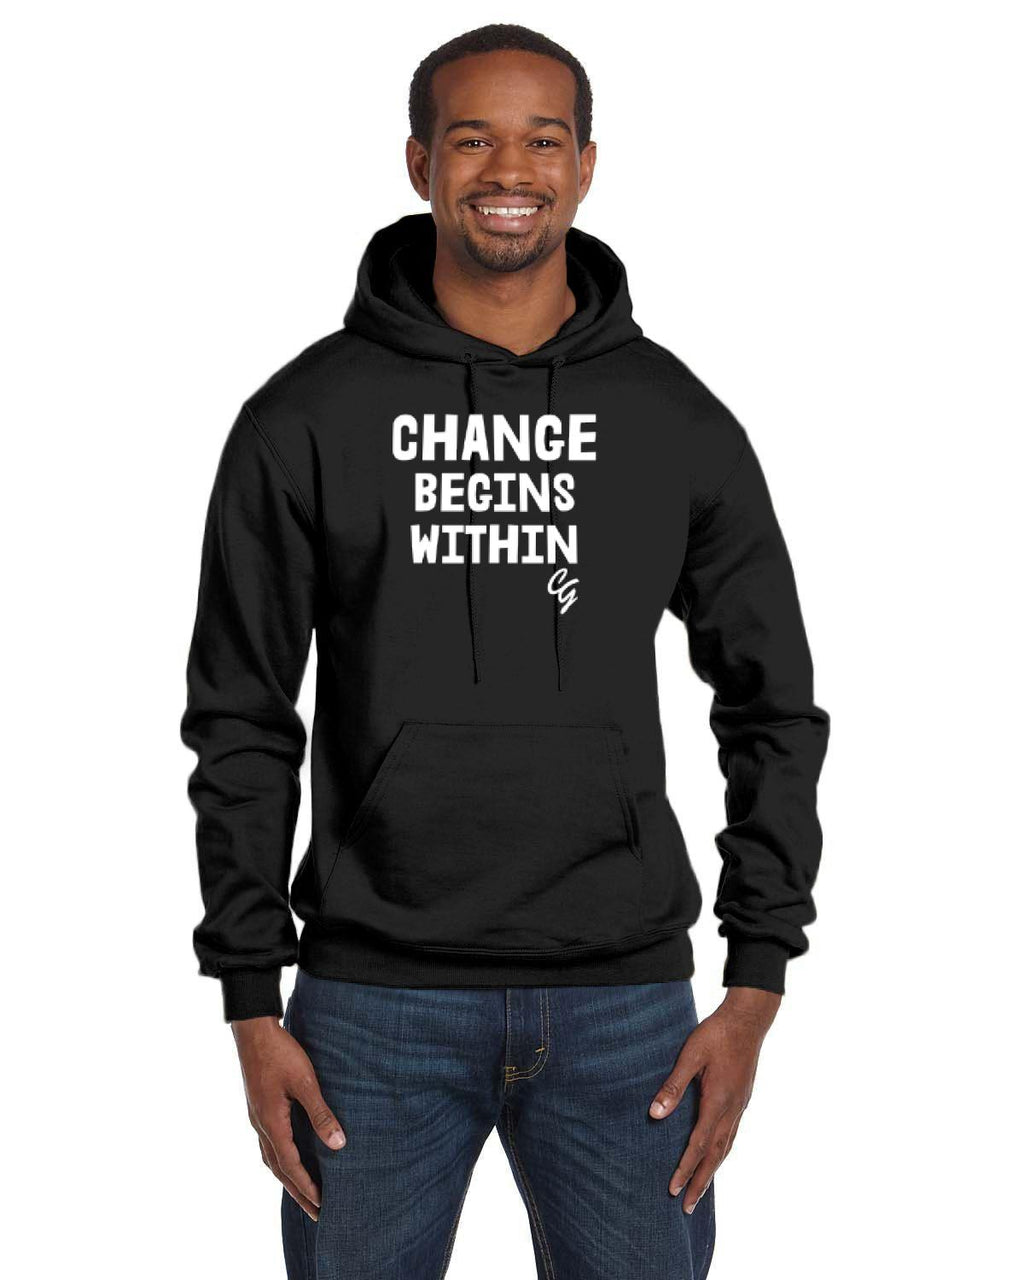 CG-Change Begins Within Champion Hoodie